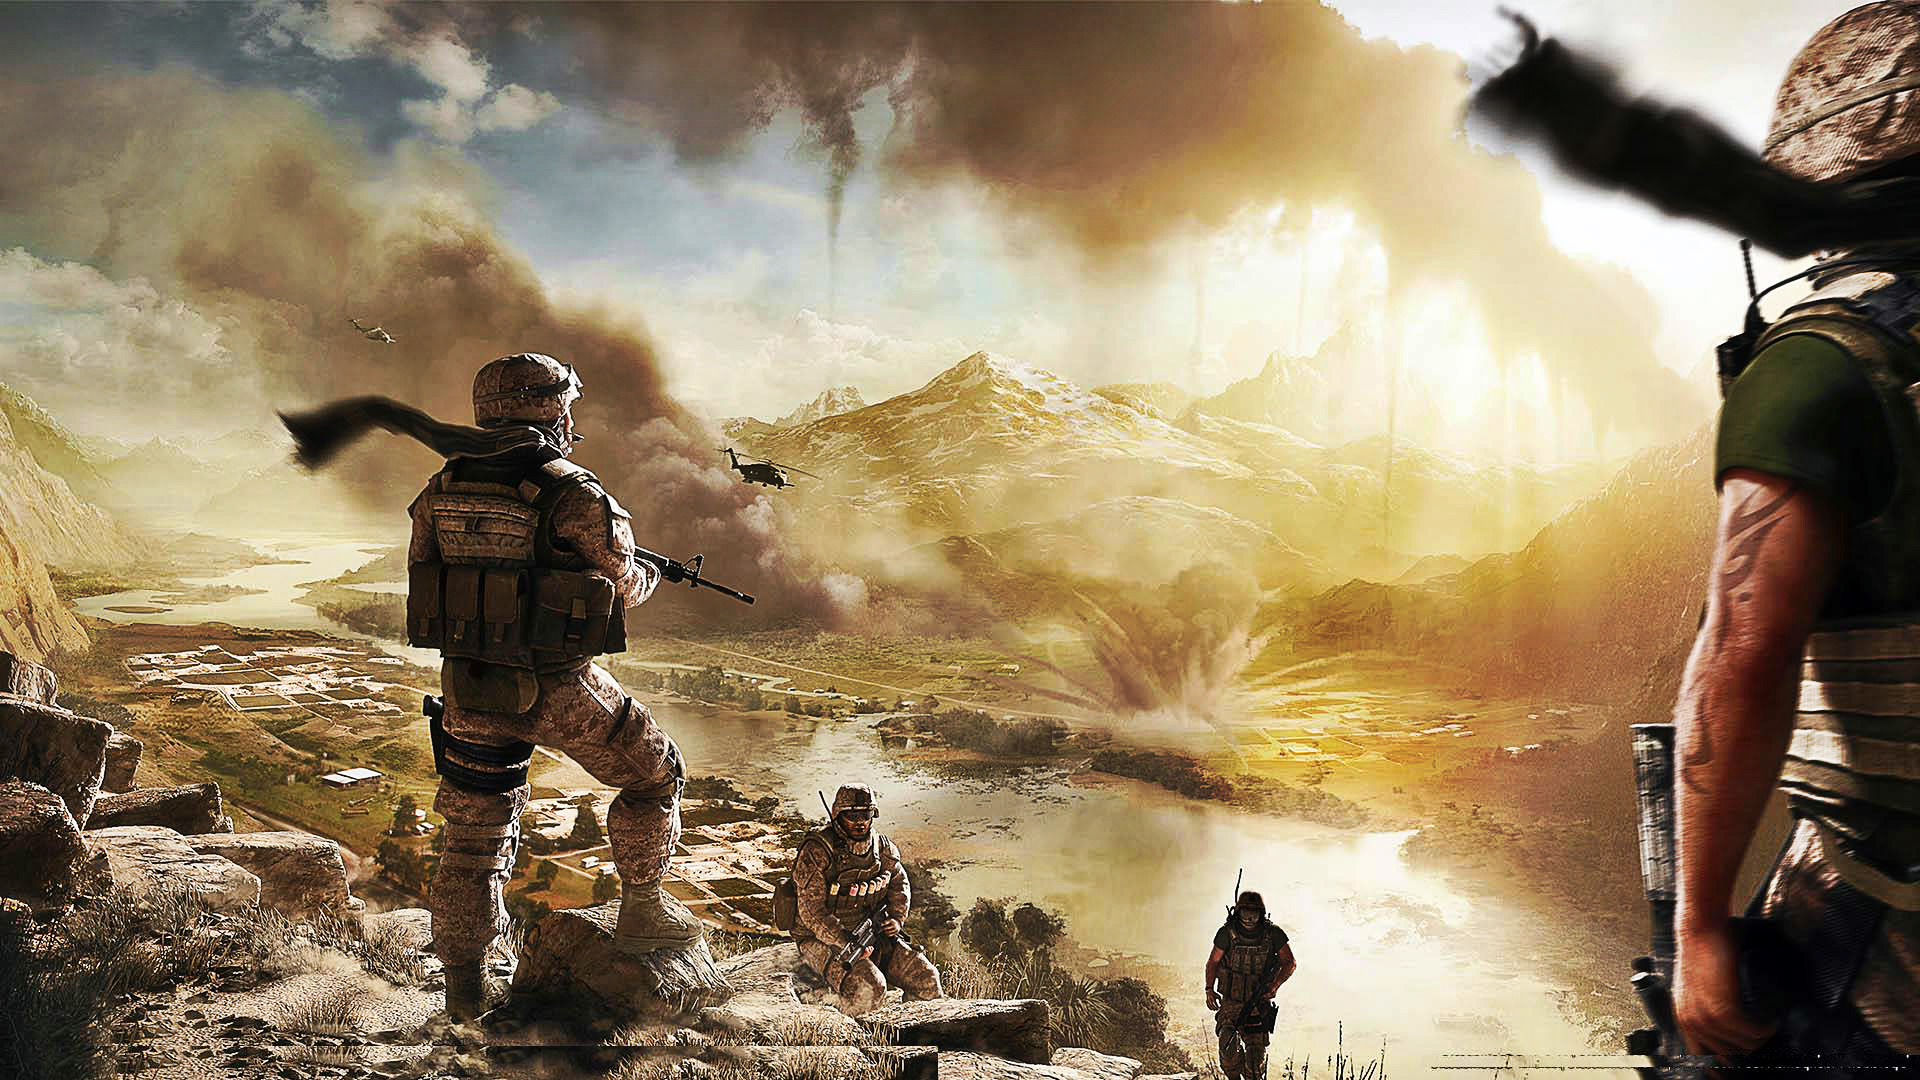 Us marine wallpaper 1920x1080